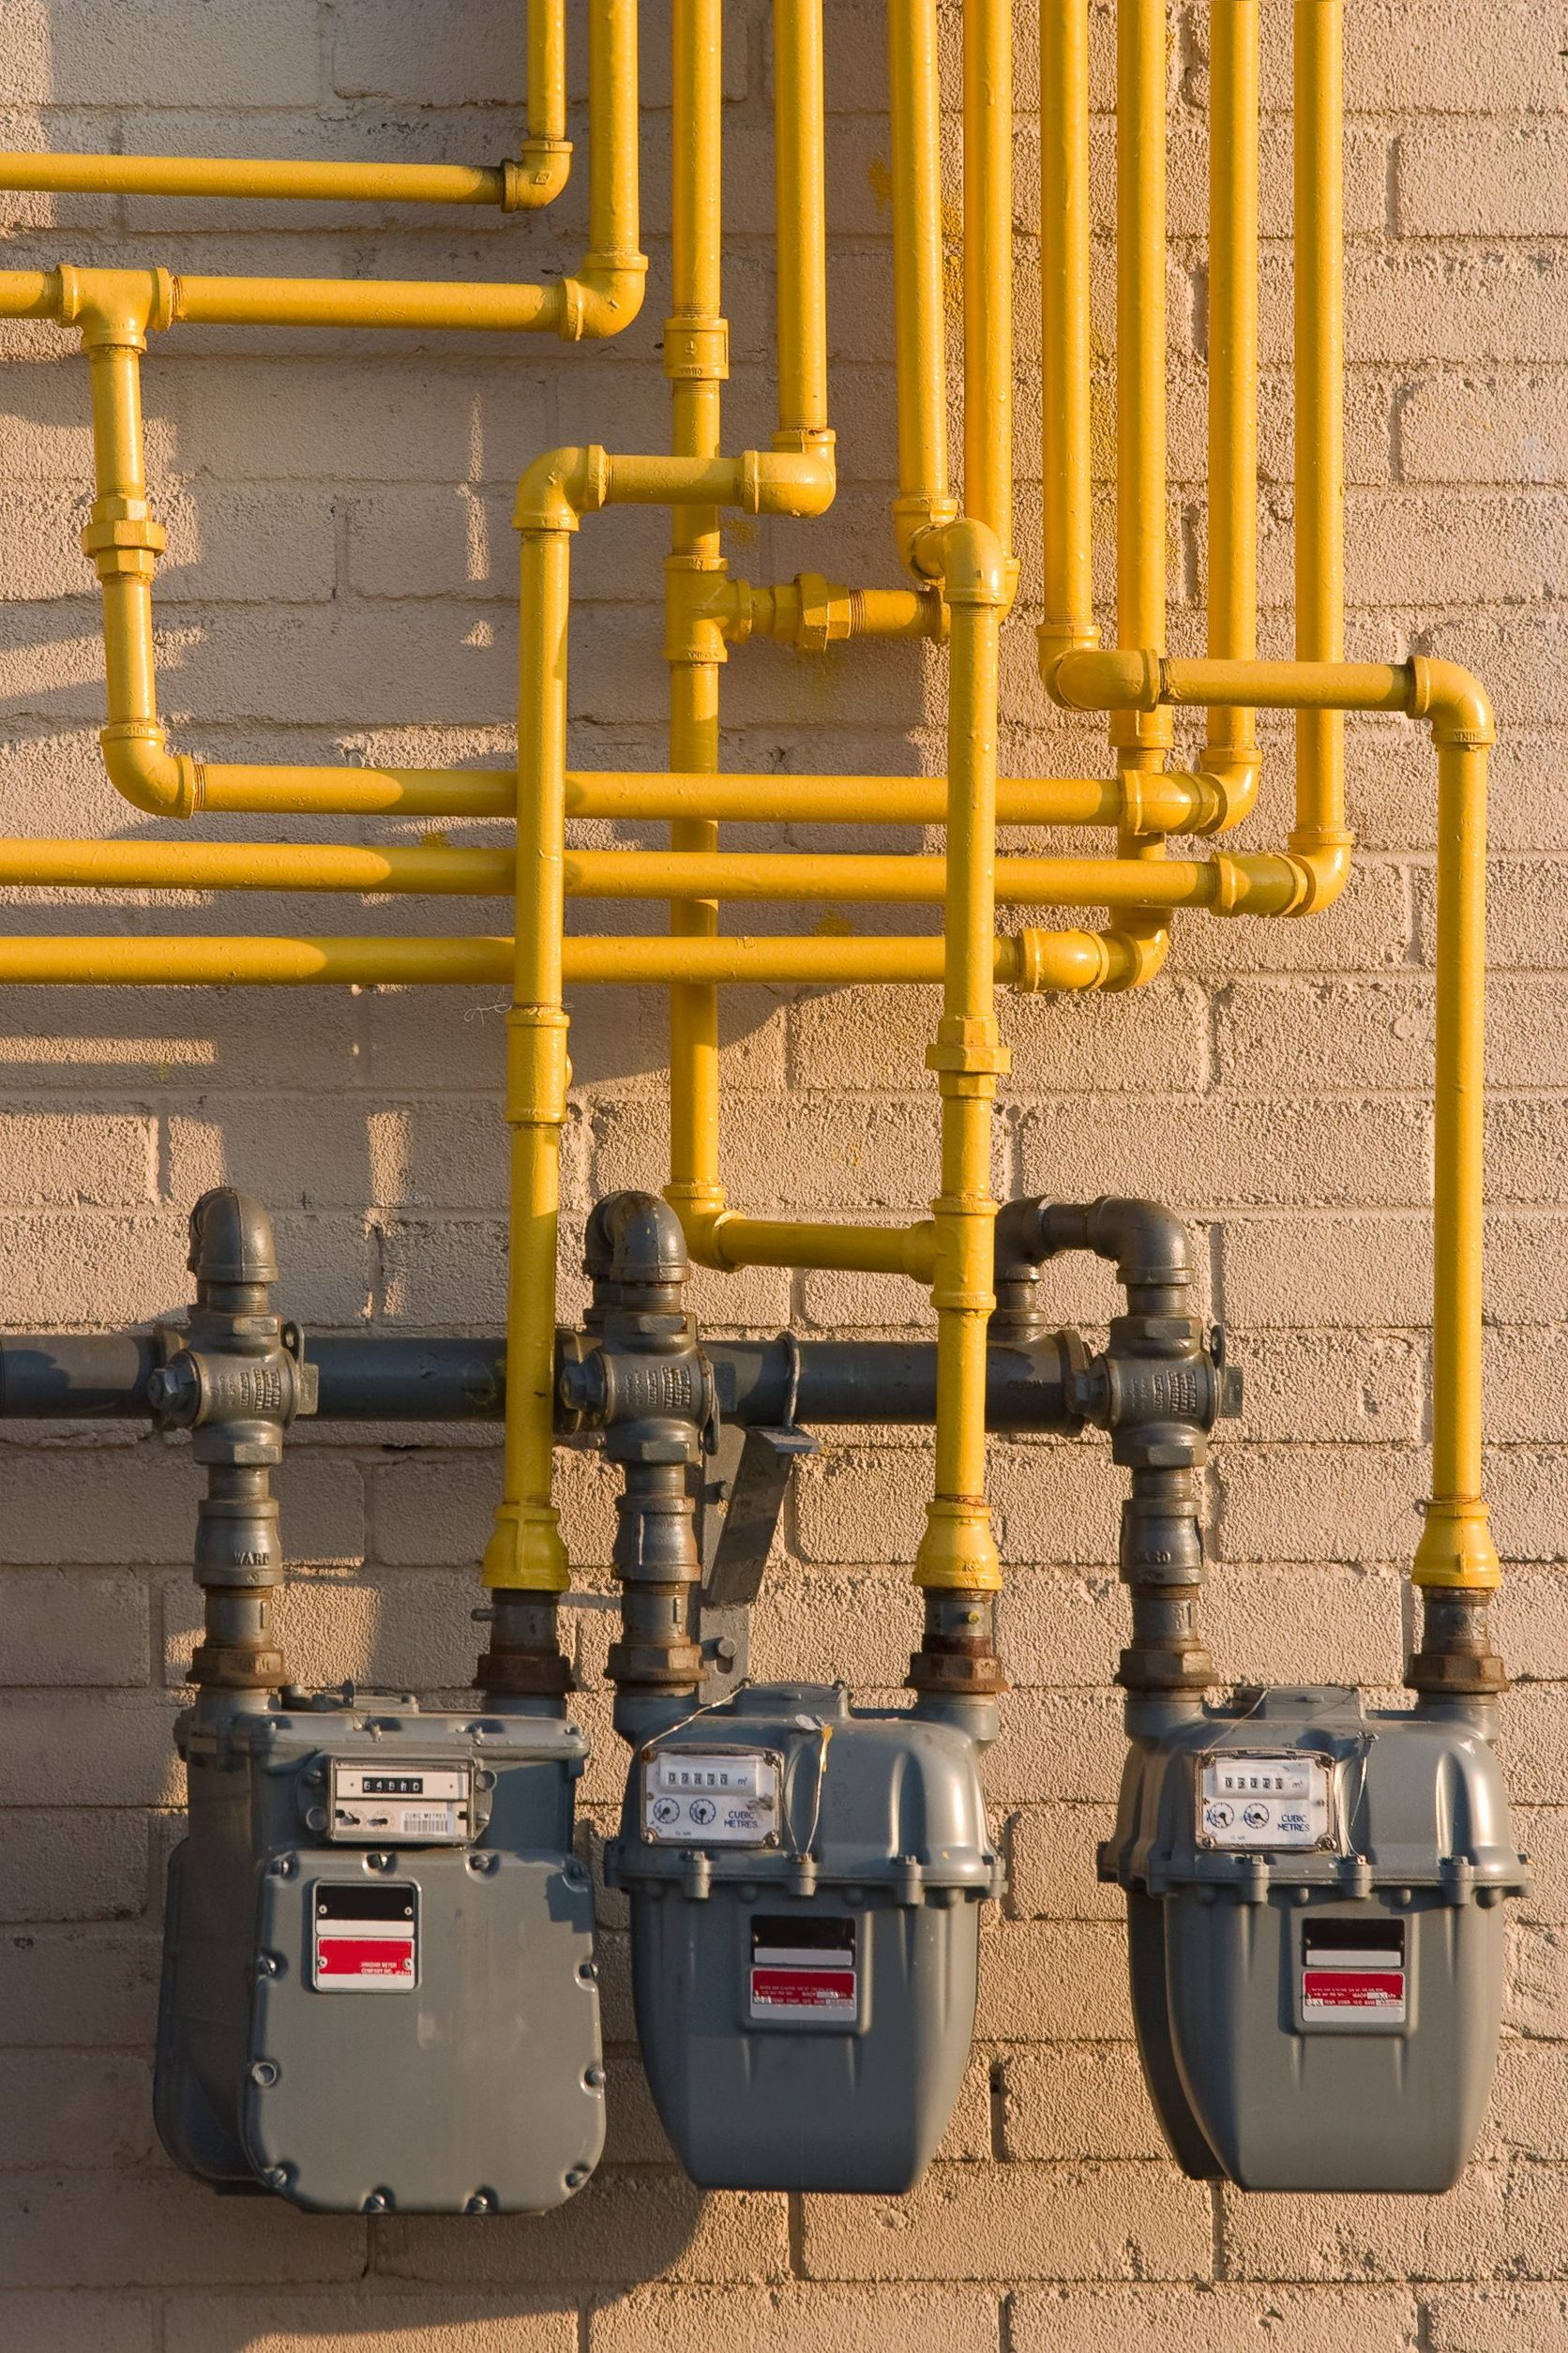 commercial gas meters with yellow gas lines running upwards